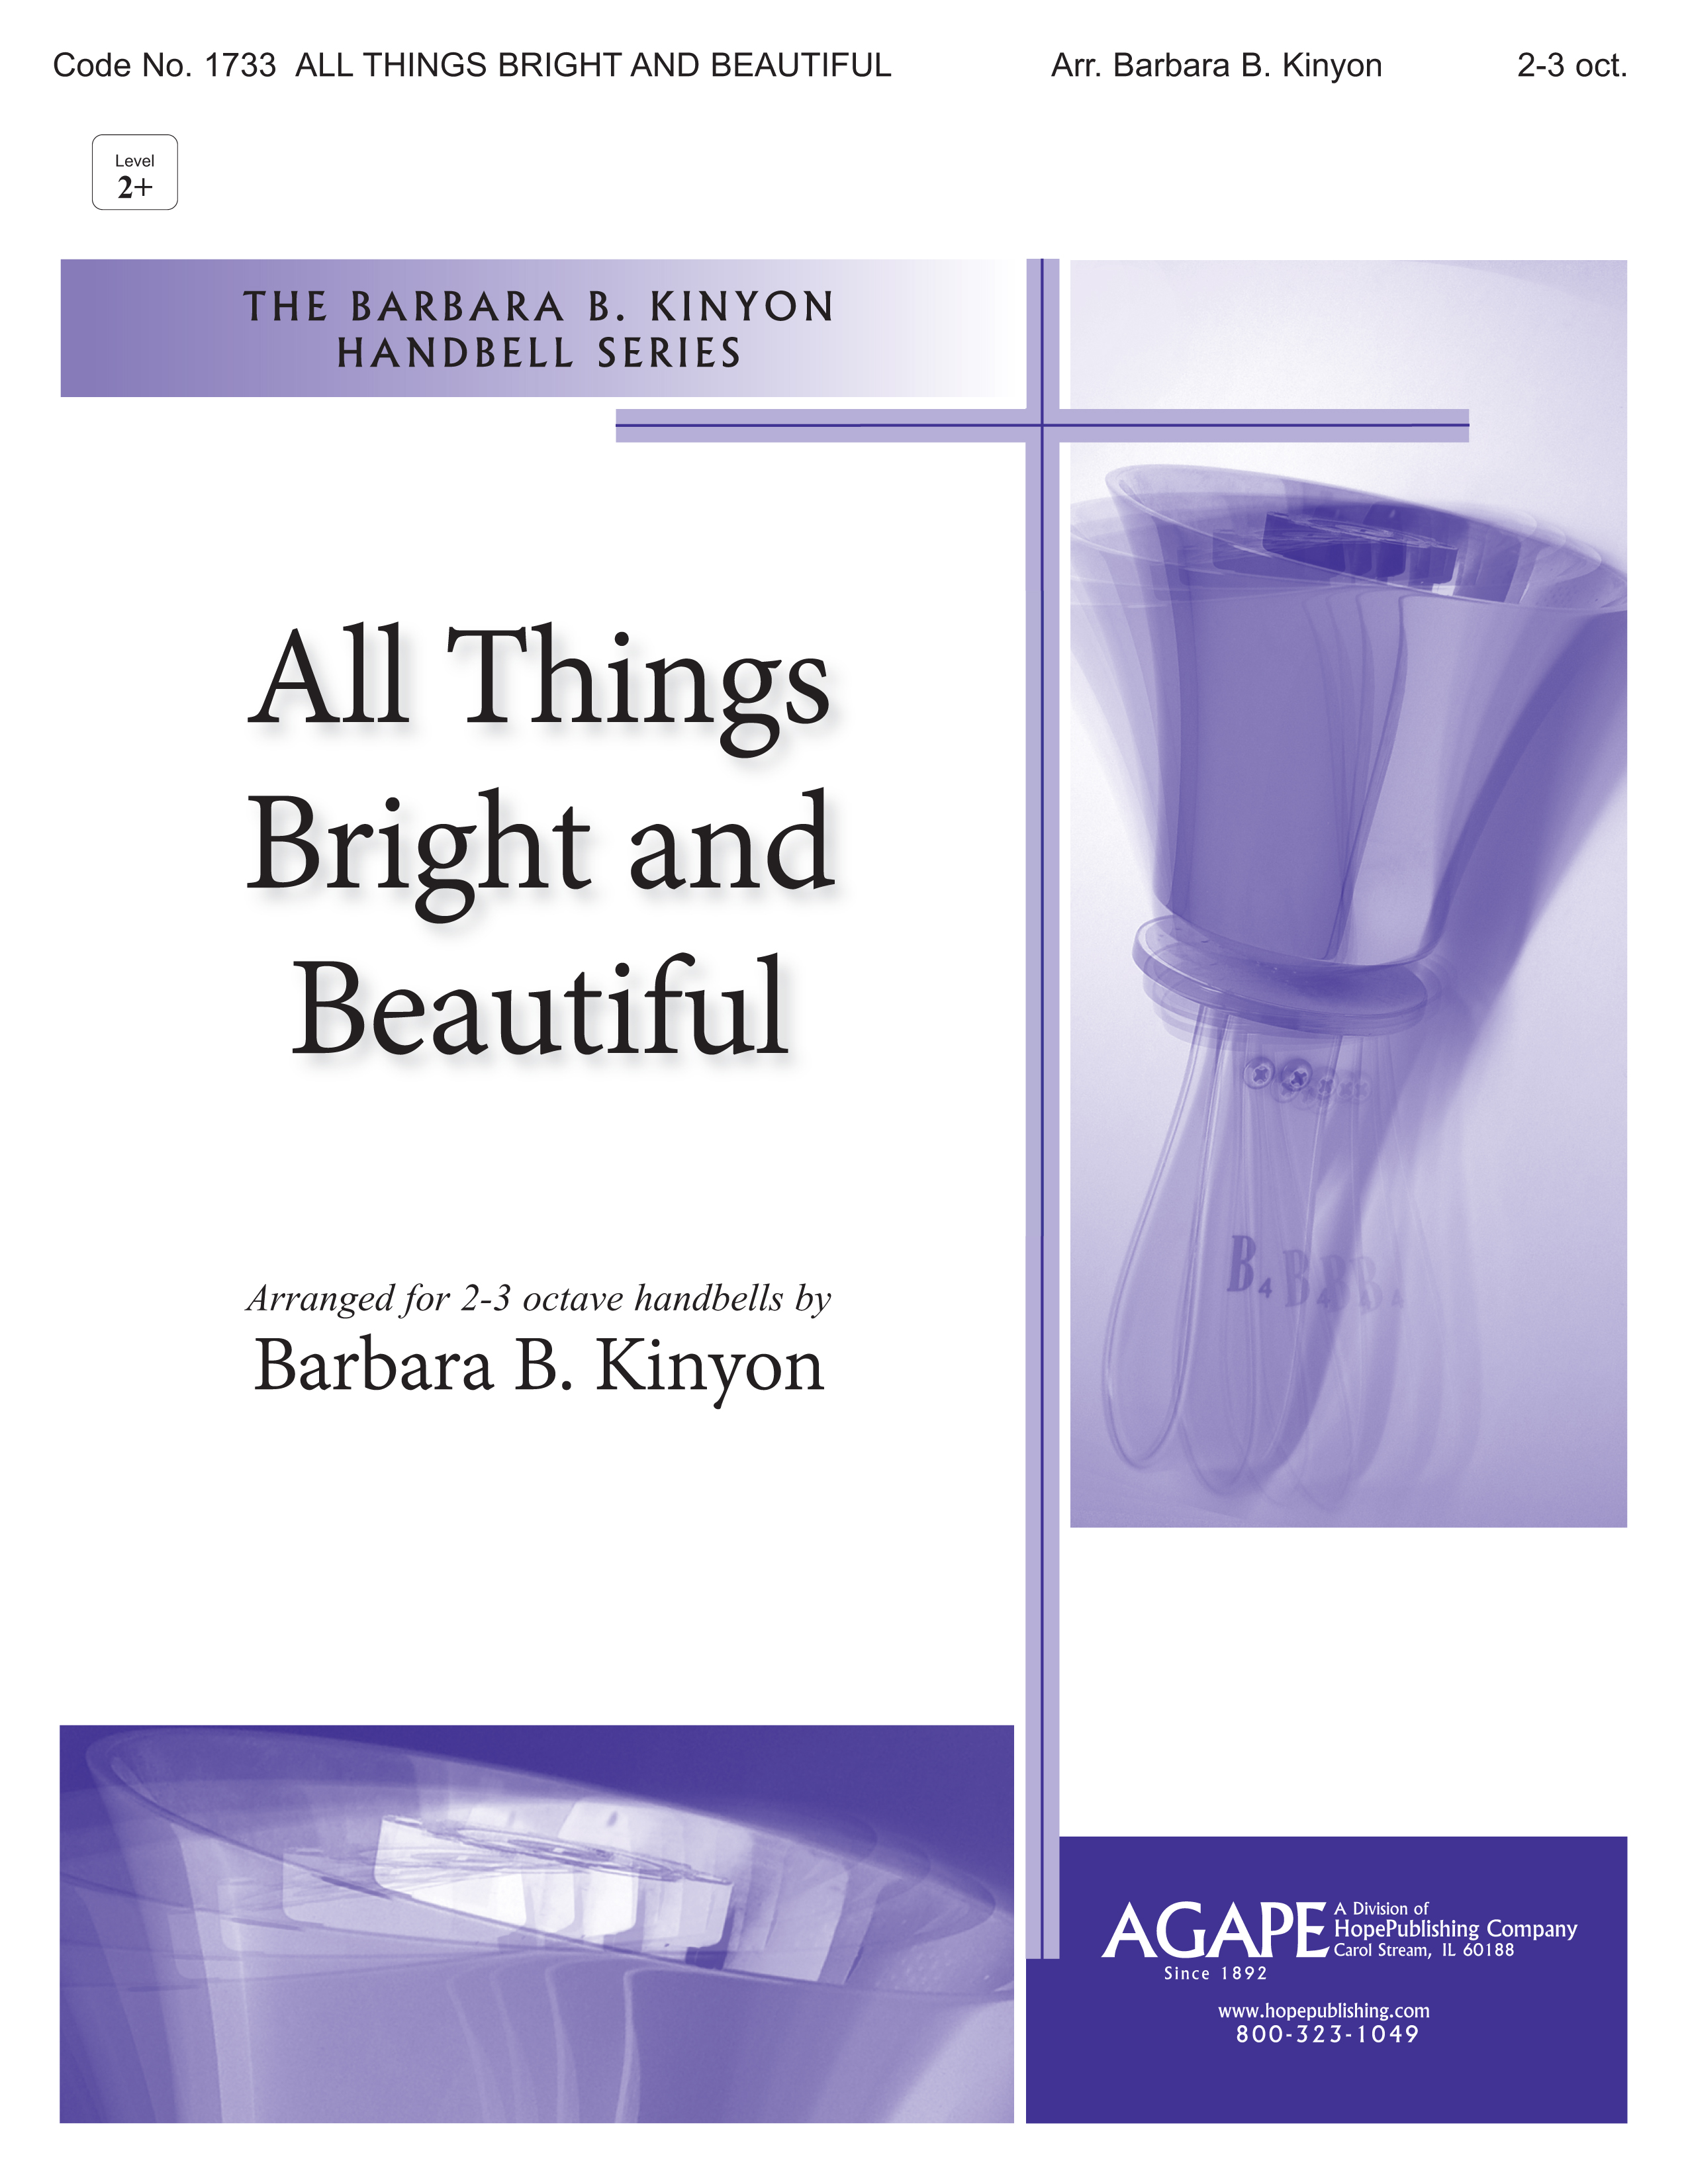 All Things Bright and Beautiful - 2-3 Octaves Cover Image